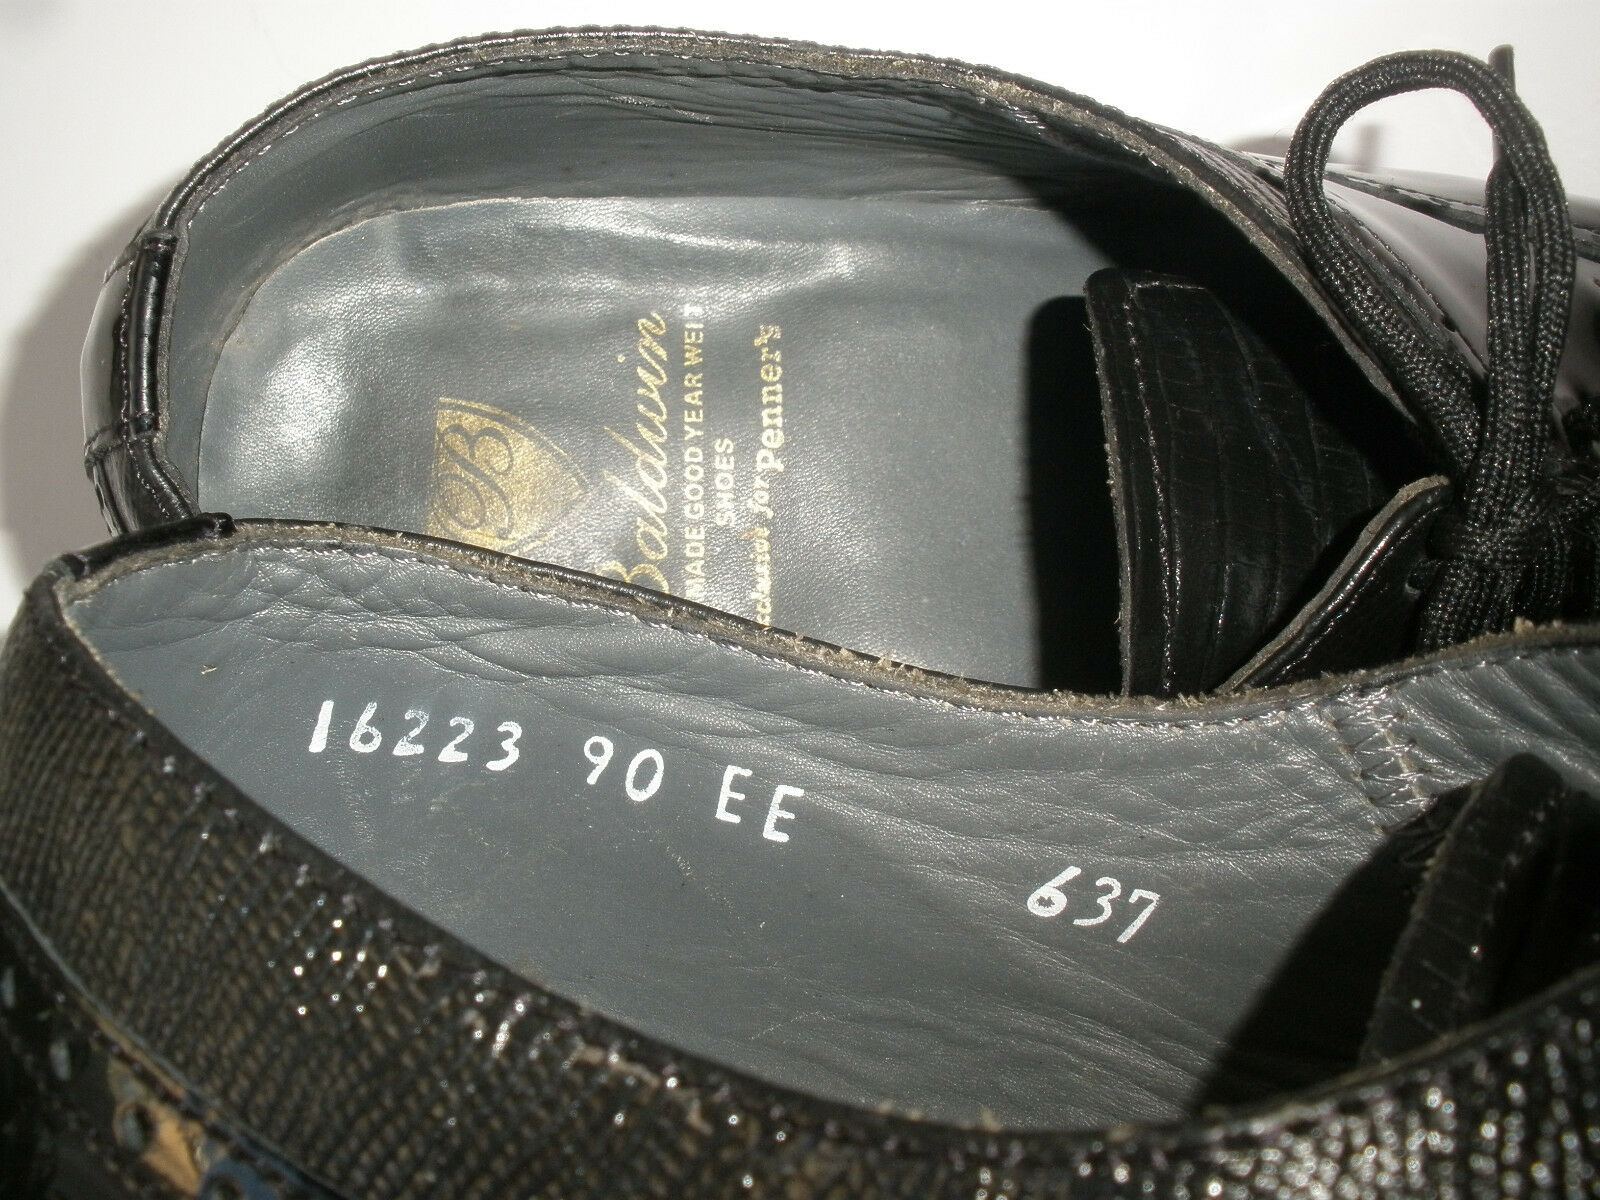 BALDWIN FOR TIP PENNER'S WING TIP FOR BLACK LEATHER OXFORD SIZE  US 9EE  MADE IN MEXICO 0fd2d2